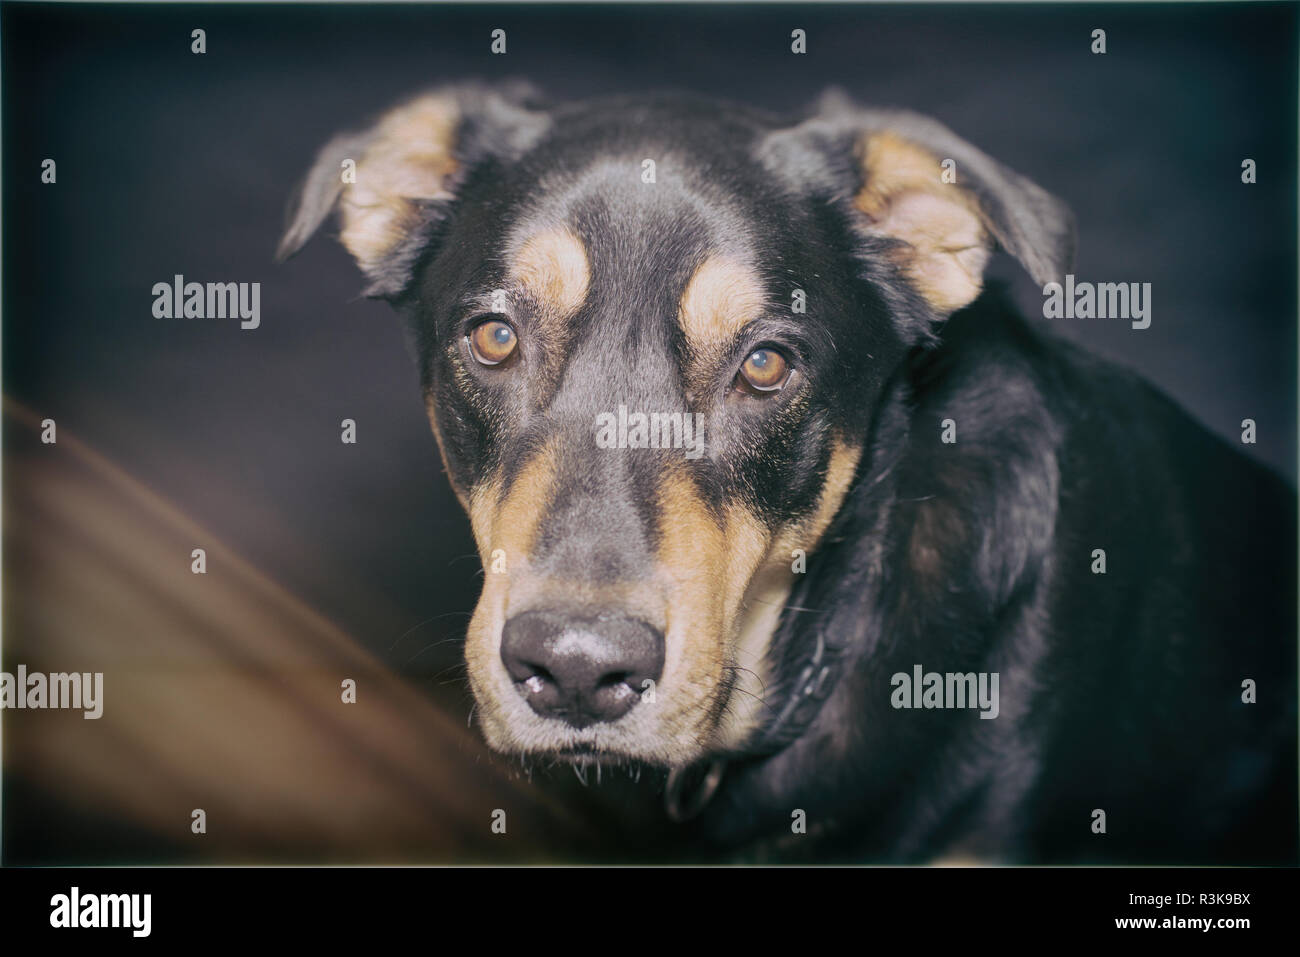 Handsome Black and tan Rescue Dog poses in Studio against a Black Background - Stock Image